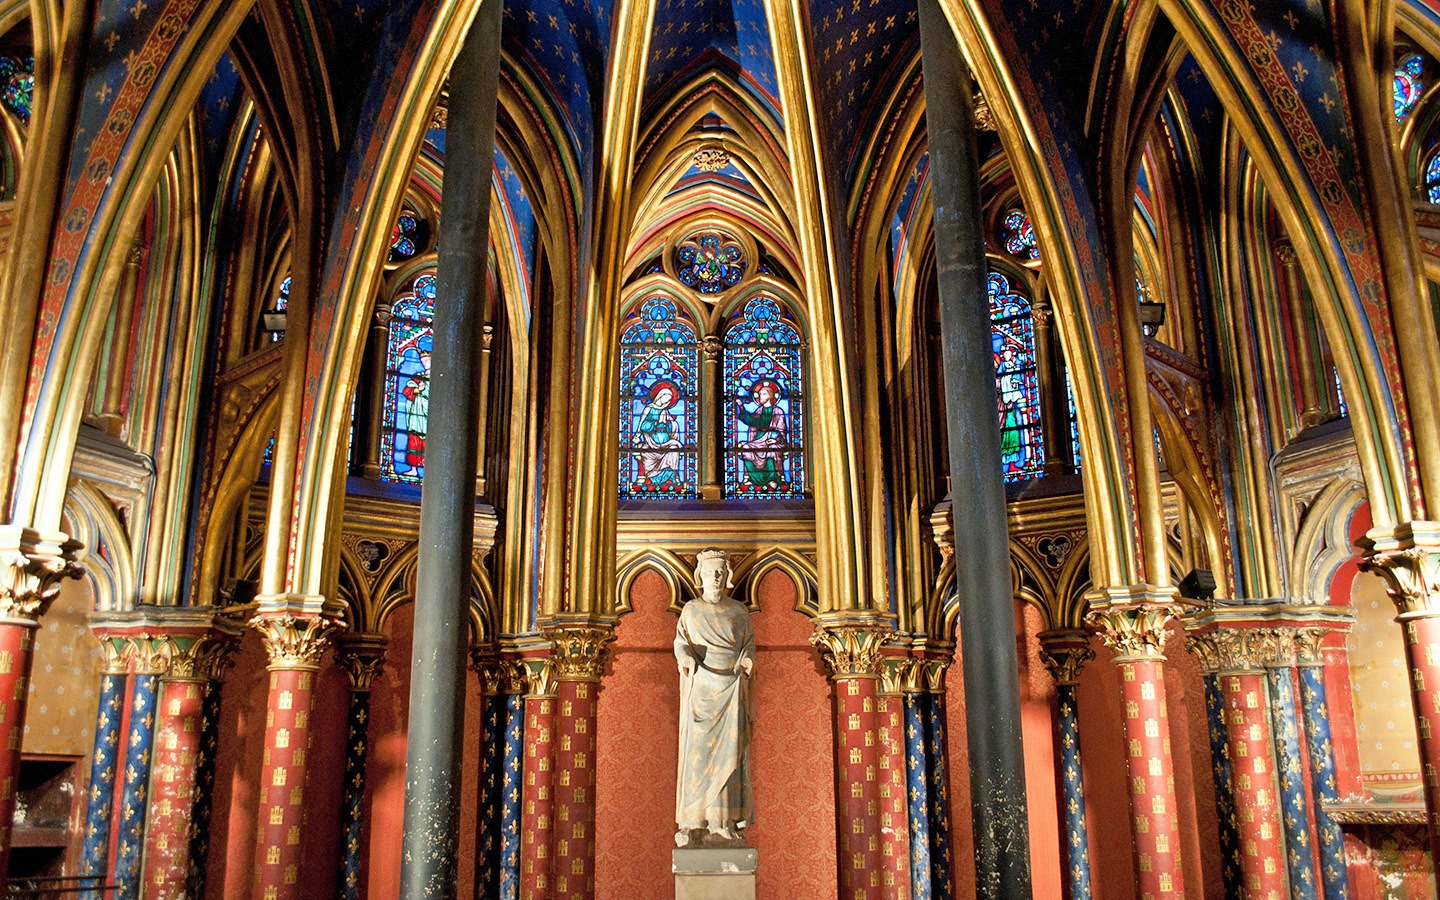 Sainte-Chapelle church in Paris